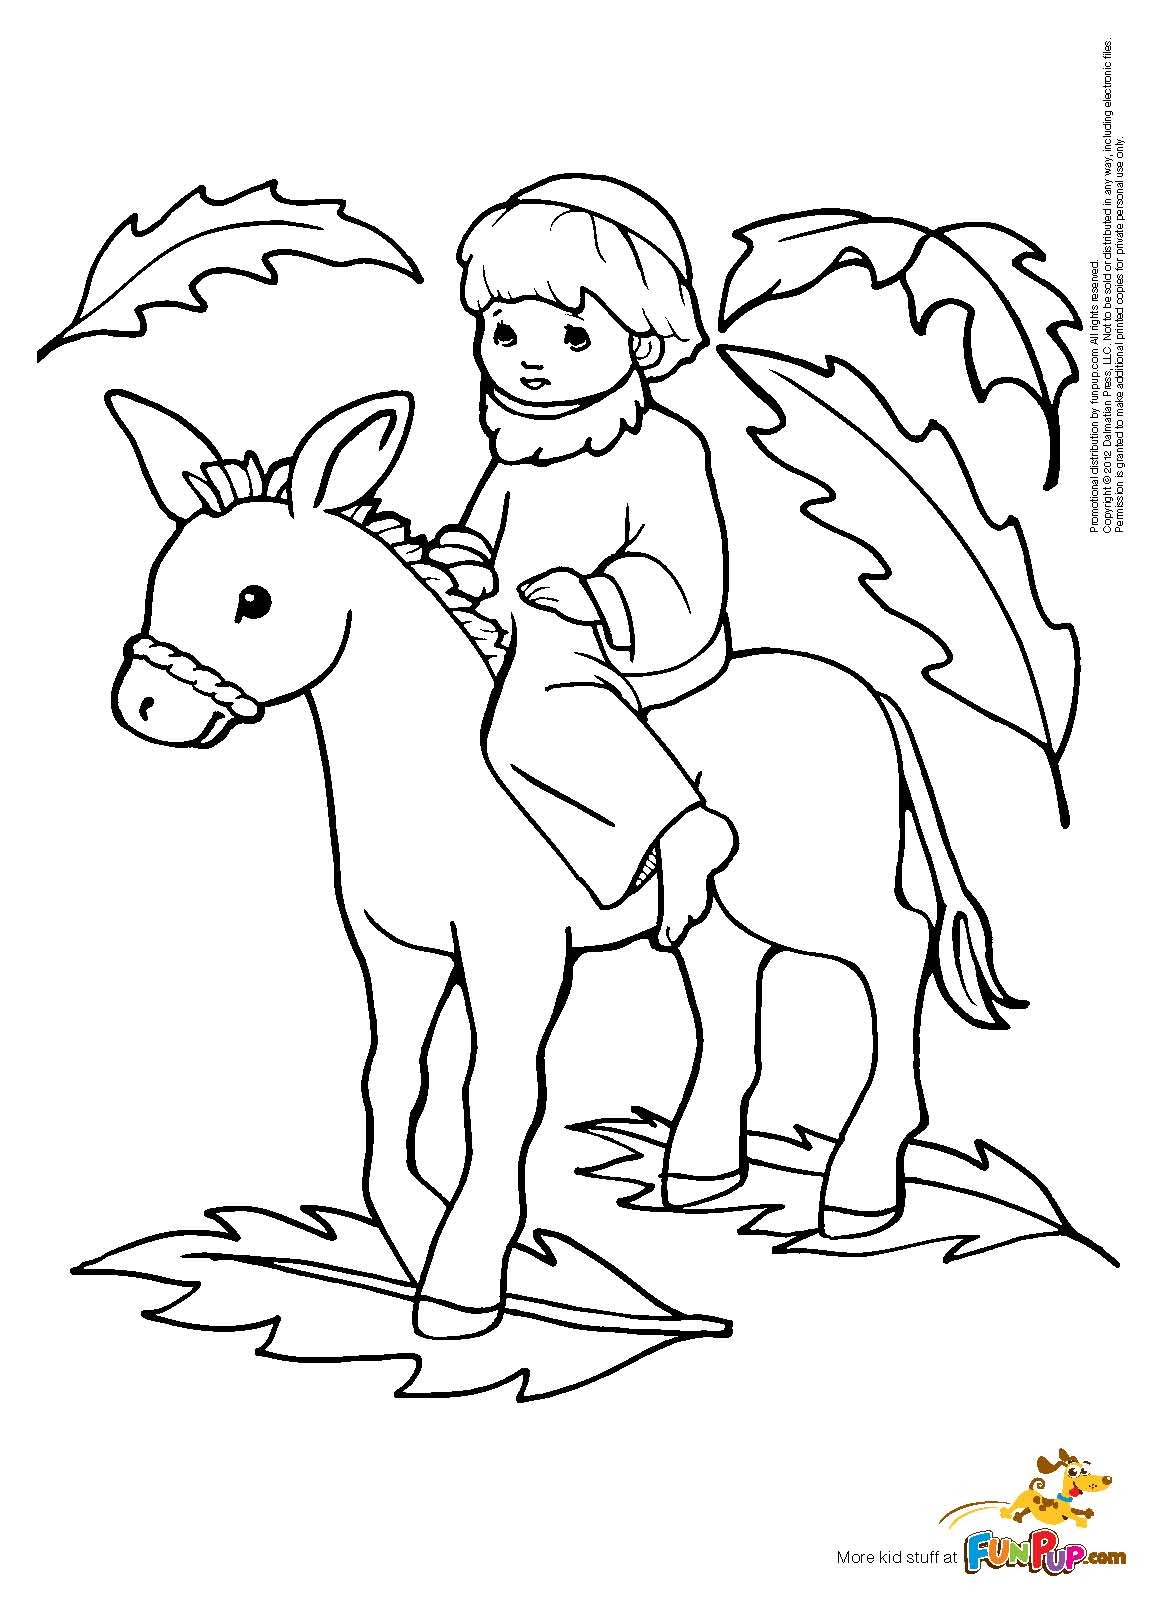 coloring pages palm sunday palm sunday coloring pages coloring home coloring palm sunday pages